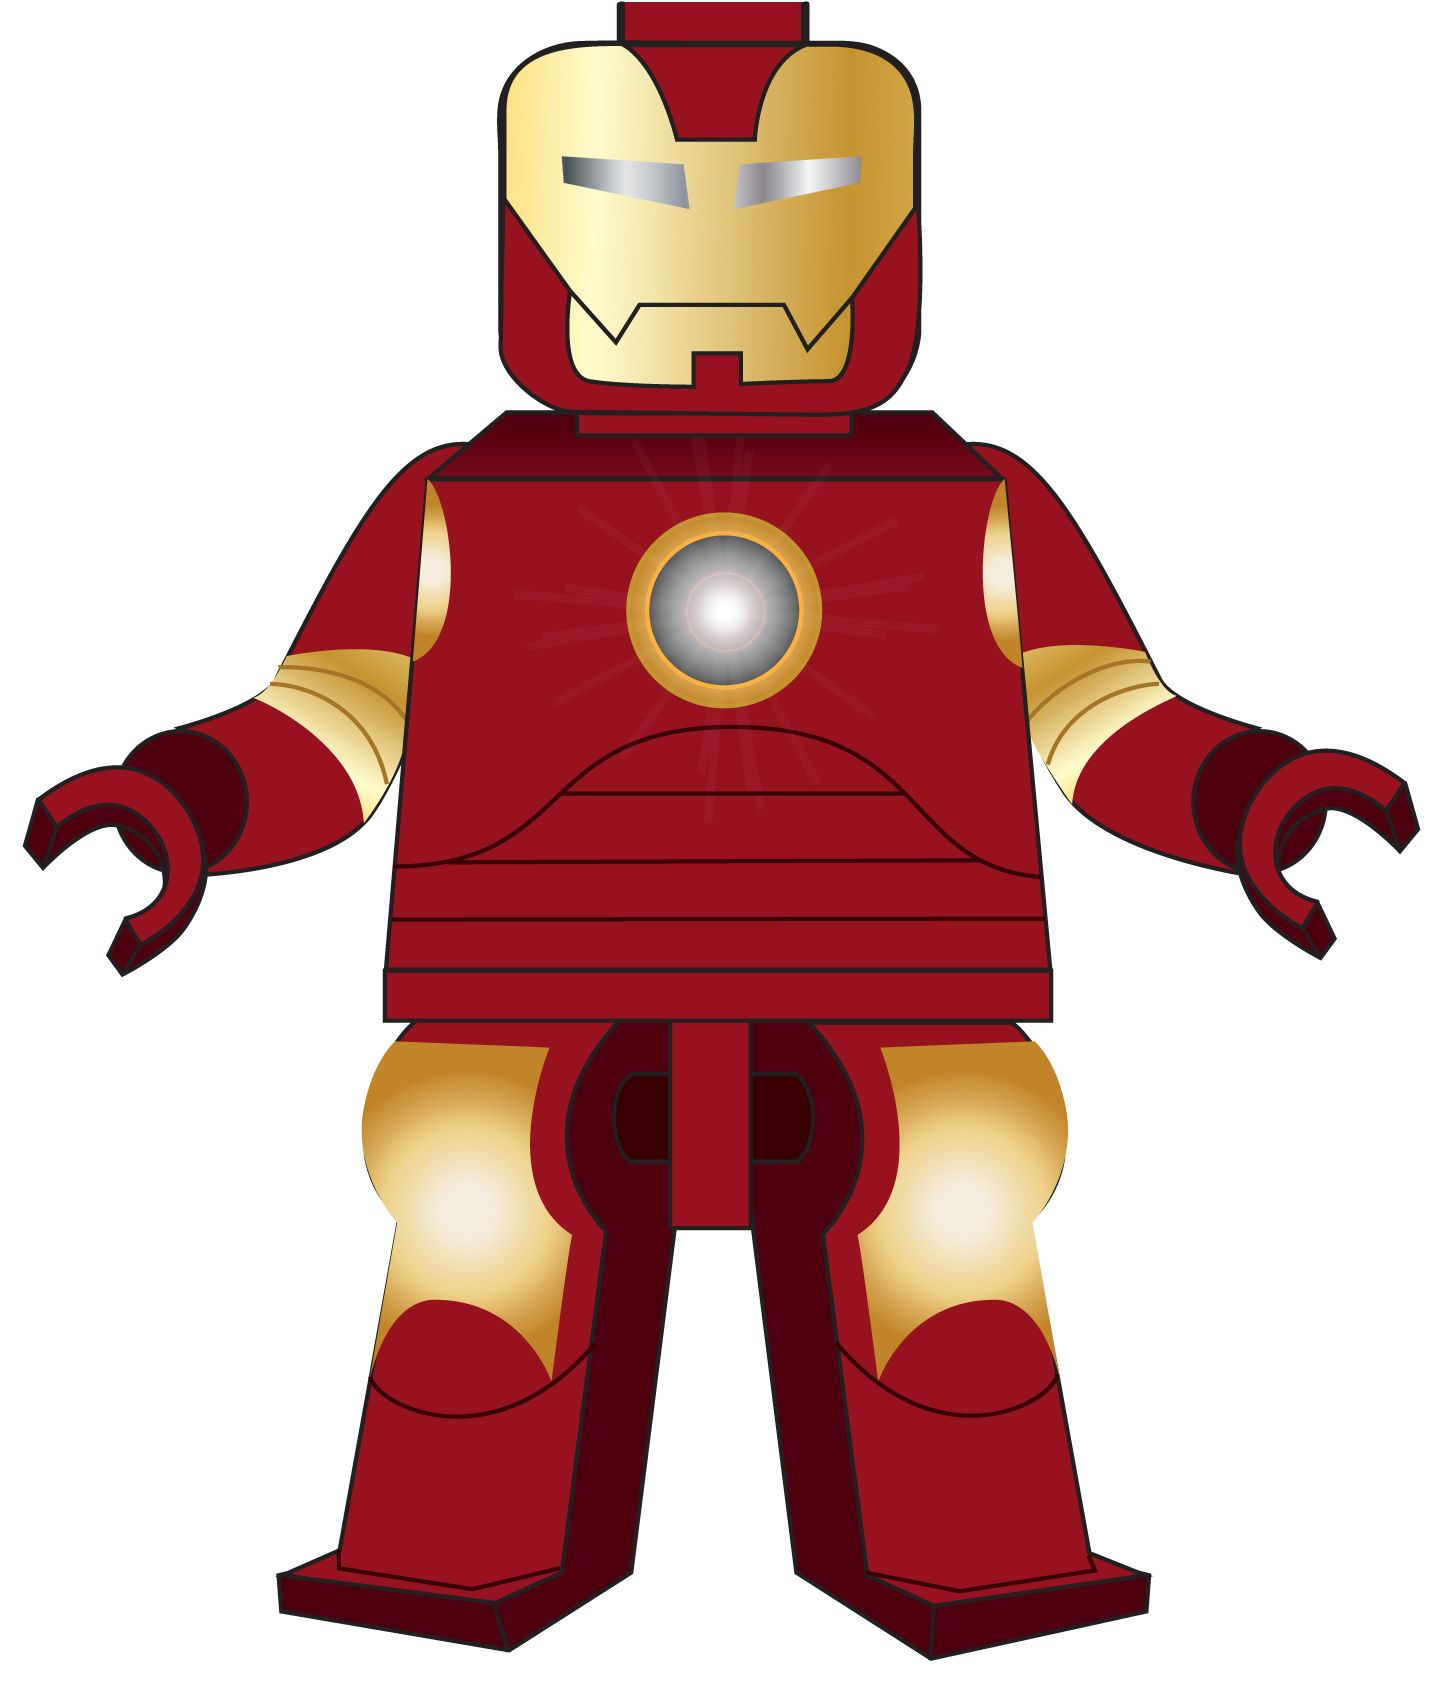 1443x1685 Vector Design Iron Man (Lego). Naija Jones My Work